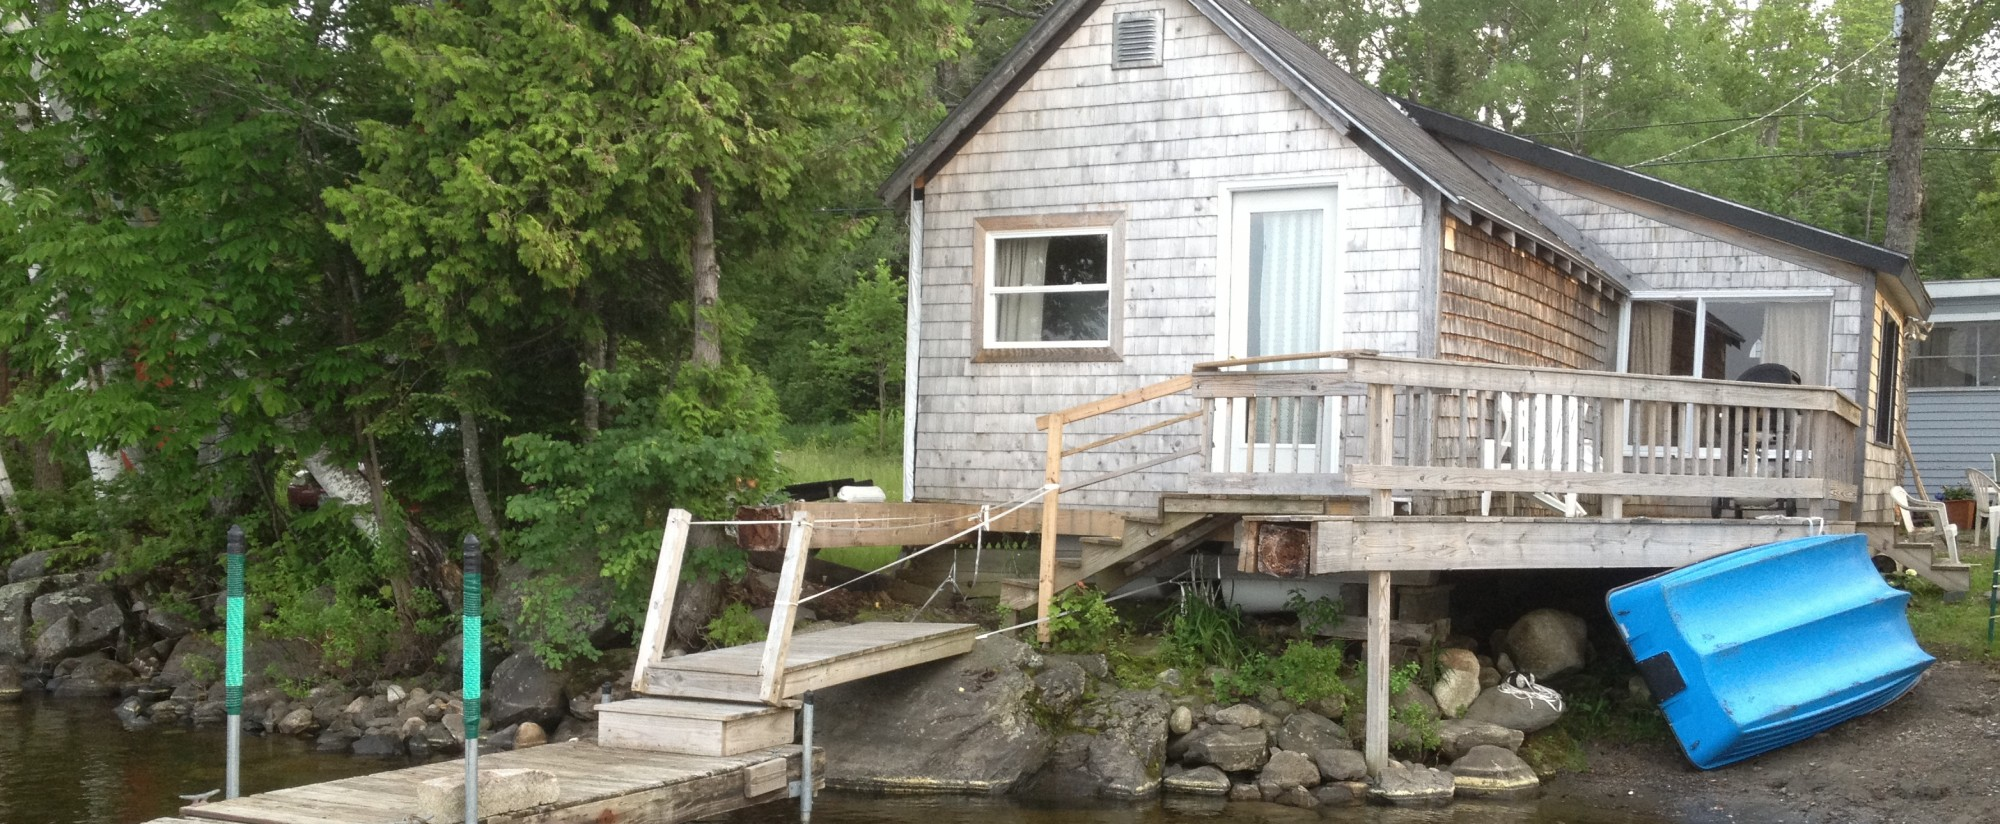 sebec lake vacation cottage lakefront rental camp in maine rh sebeclakevacationcottage com lake cottages for rent in indiana lake cottages for rent in ct